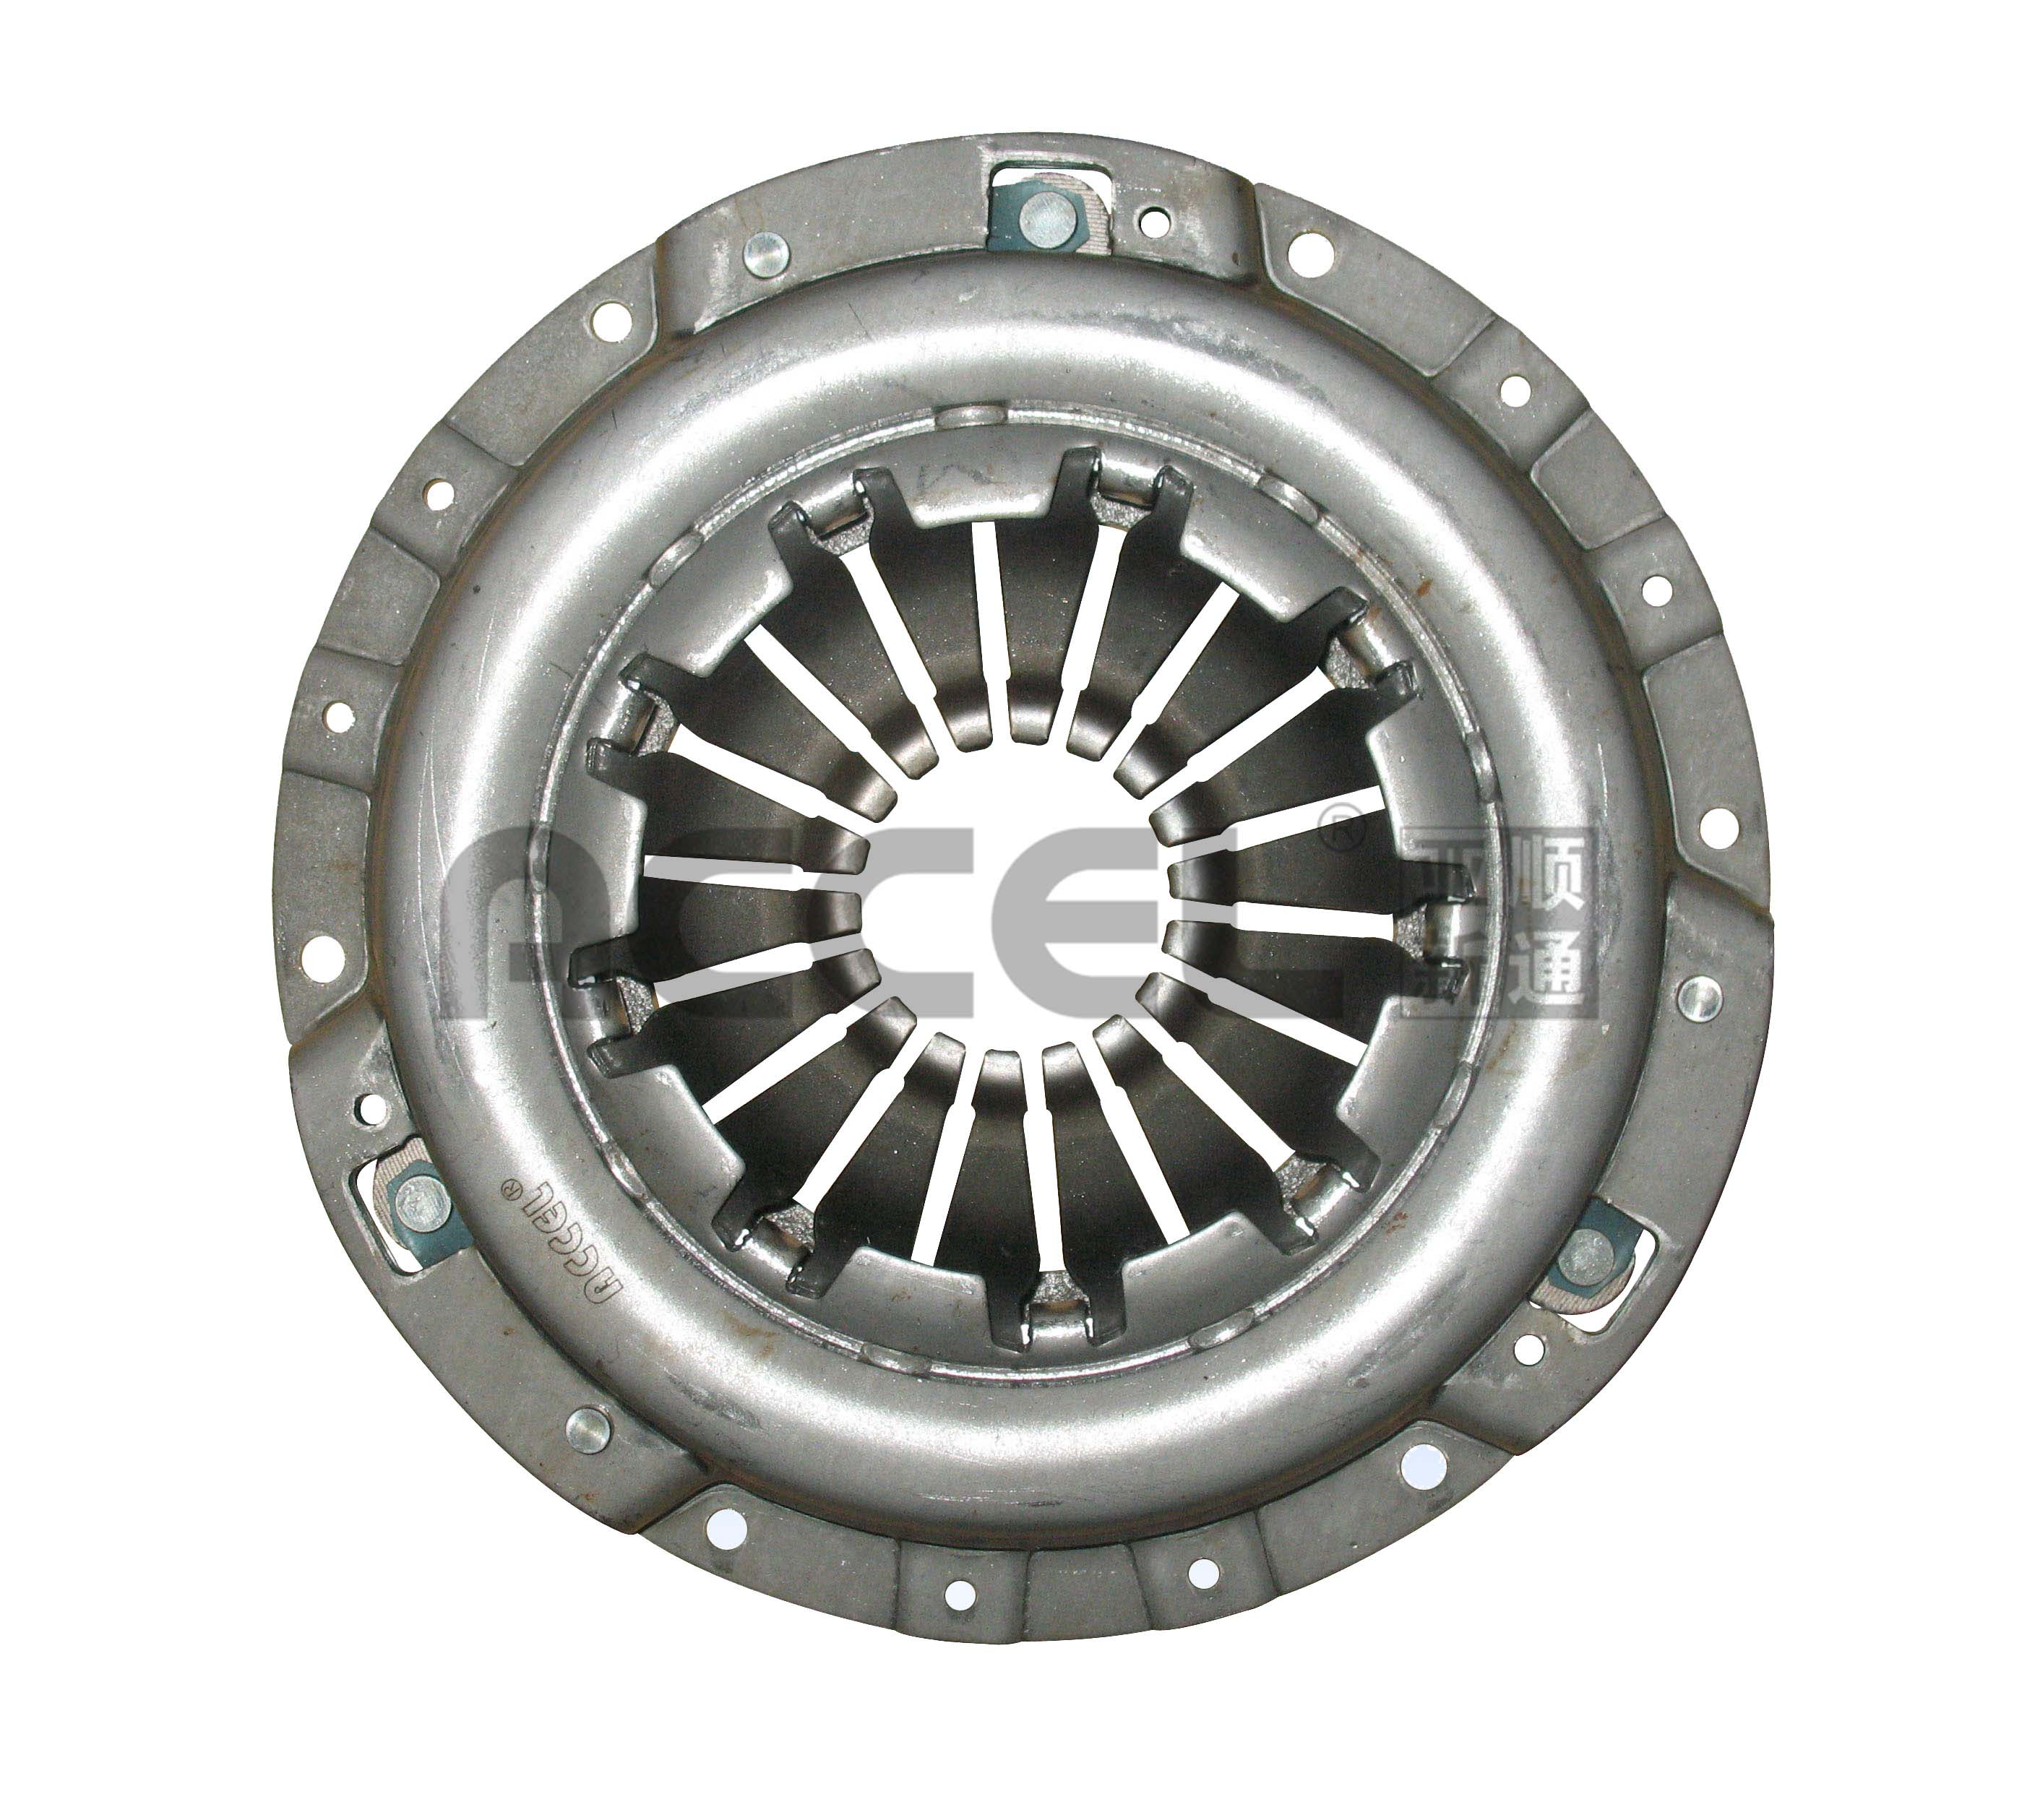 Clutch Cover/OE:96138856/215*133*250/CDW-004/DAEWOO/LY402/DWC-17